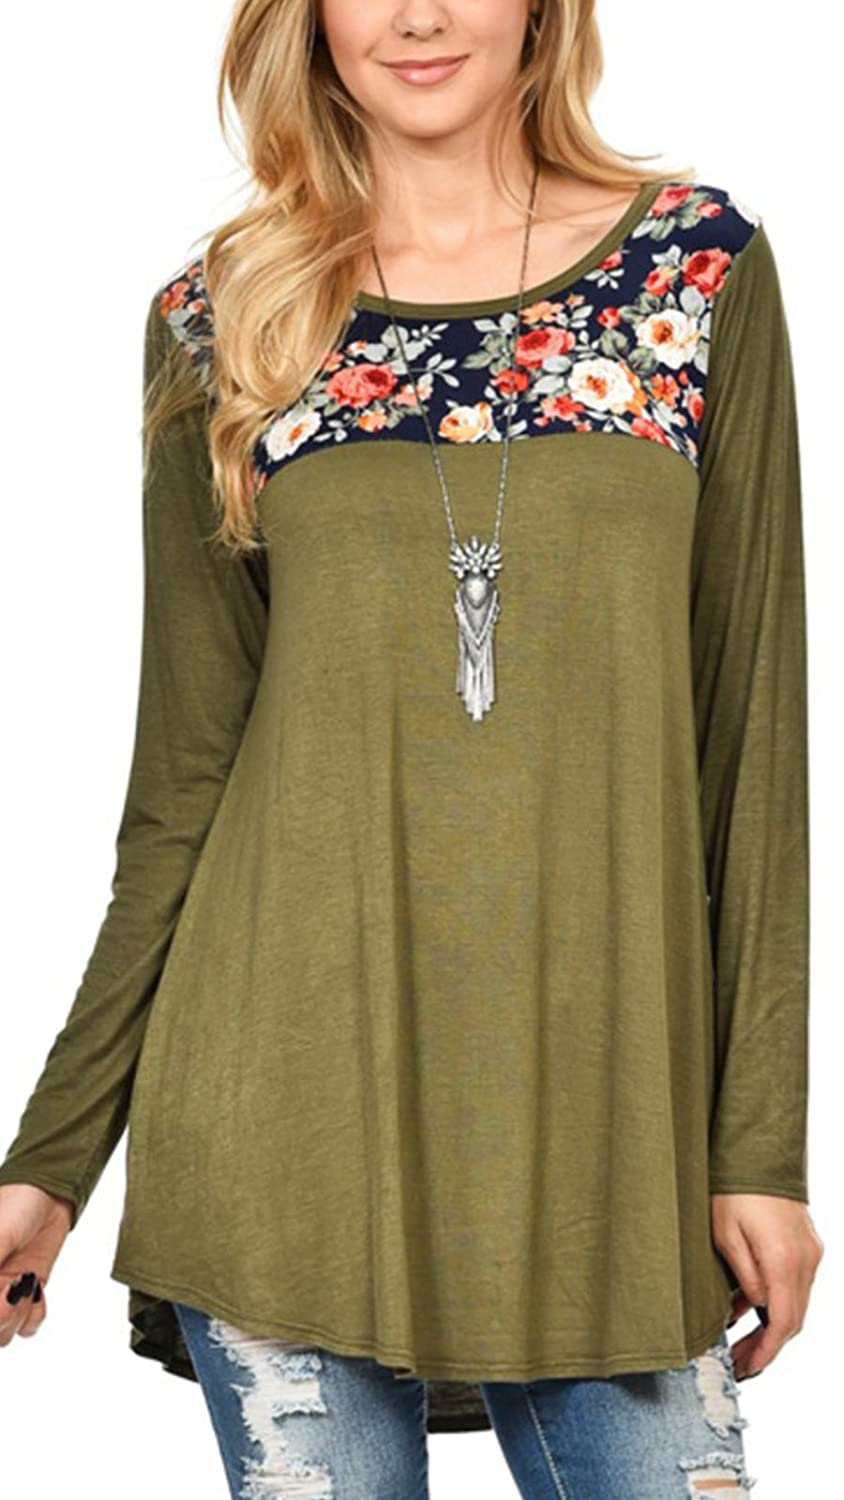 UMe Womens Extra Soft Loose Fit Floral Tunic Tops Round Neck Casual Flowy Long Sleeve Nightshirt Shirt Tee